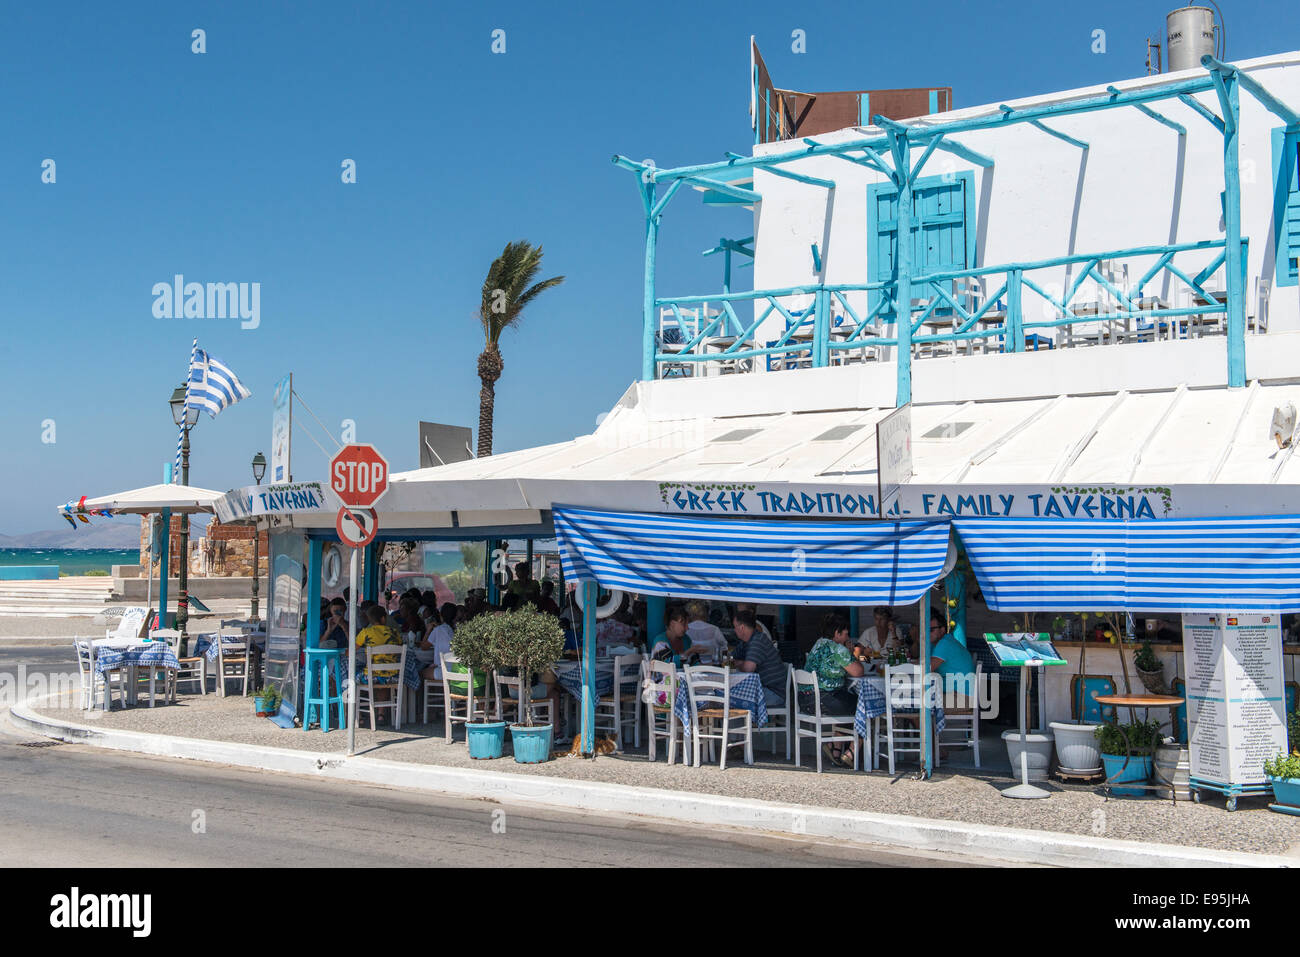 Seafront tavern with guests dining, Mastichari, island of Kos, Greece - Stock Image